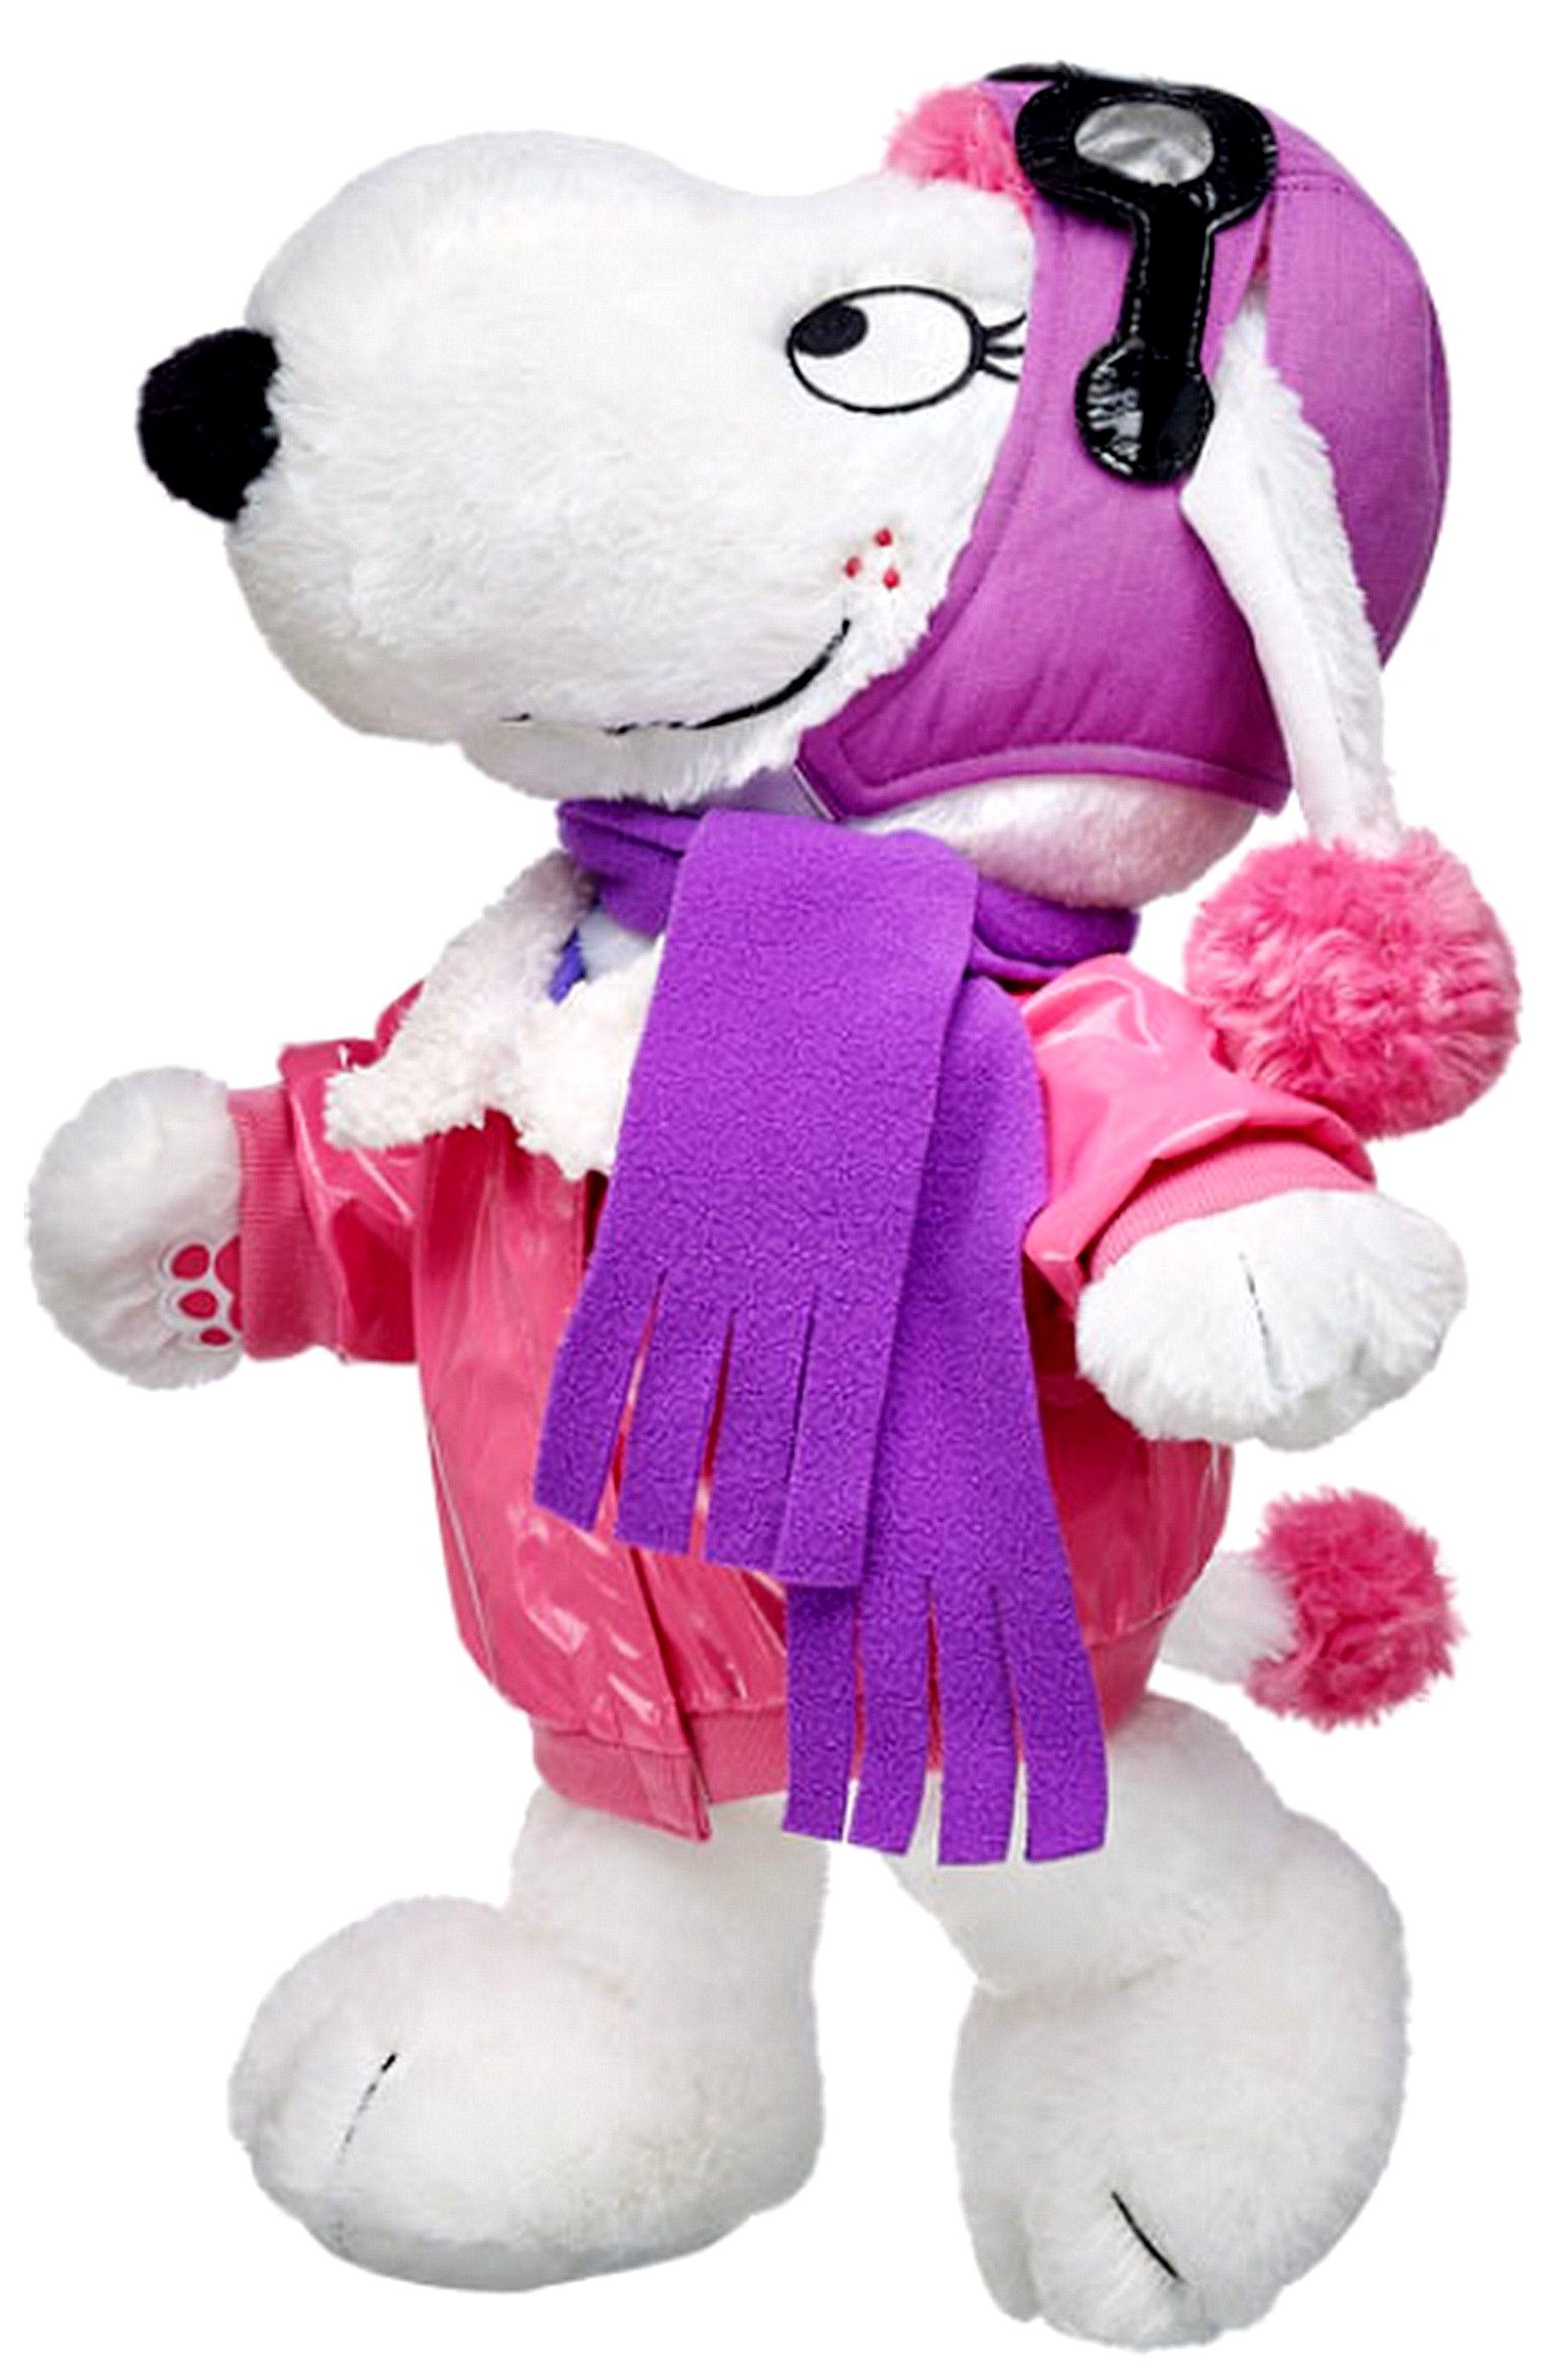 New Build a Bear Flying Fifi French Poodle Pup 17 inch Stuffed Plush Animal with Outfit LTD Snoopy Peanuts Movie Toy In Stock Now at http://www.bonanza.com/booths/TweetToyShop